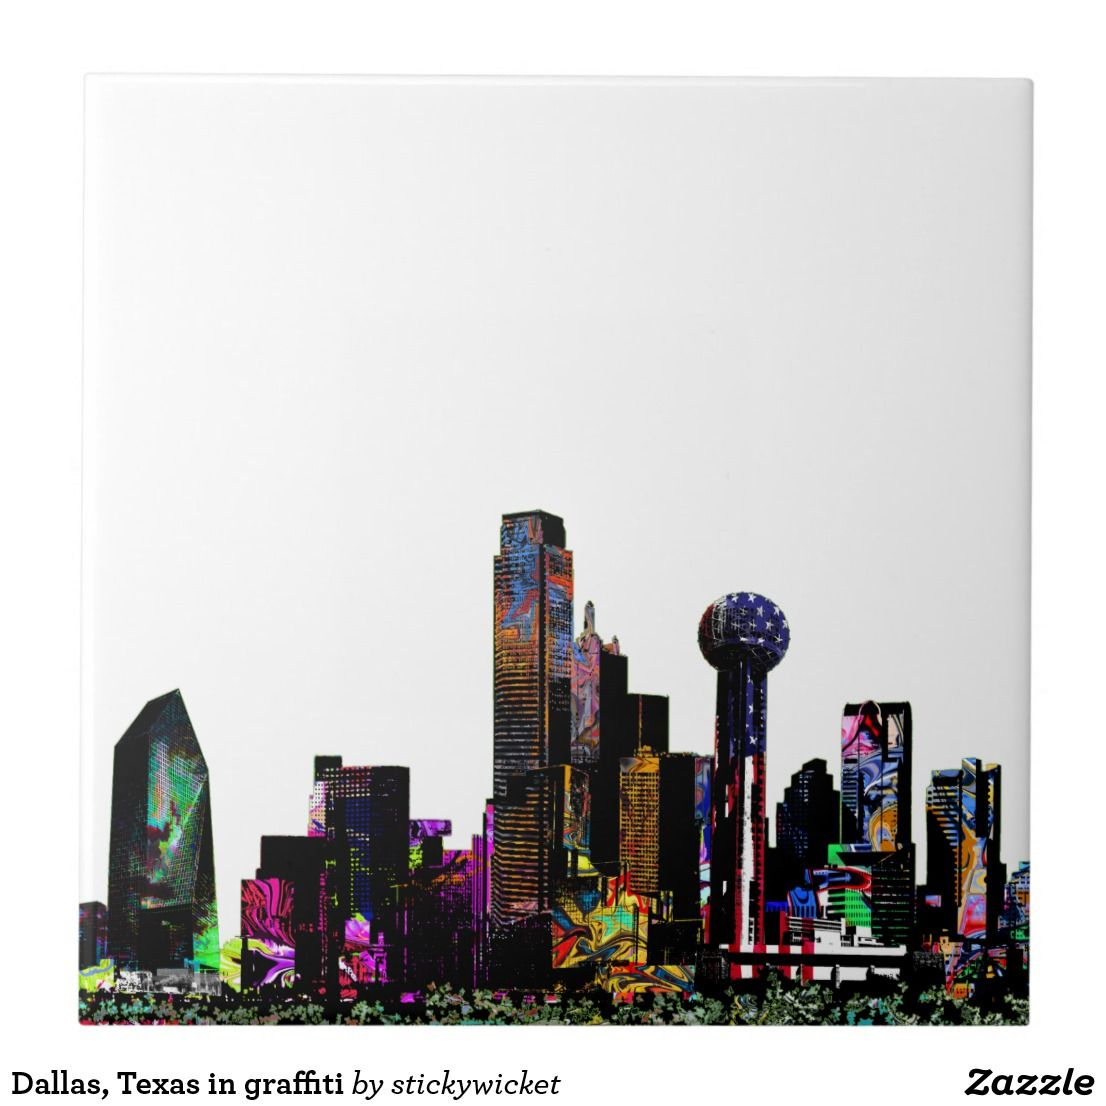 Dallas texas in graffiti tile with images